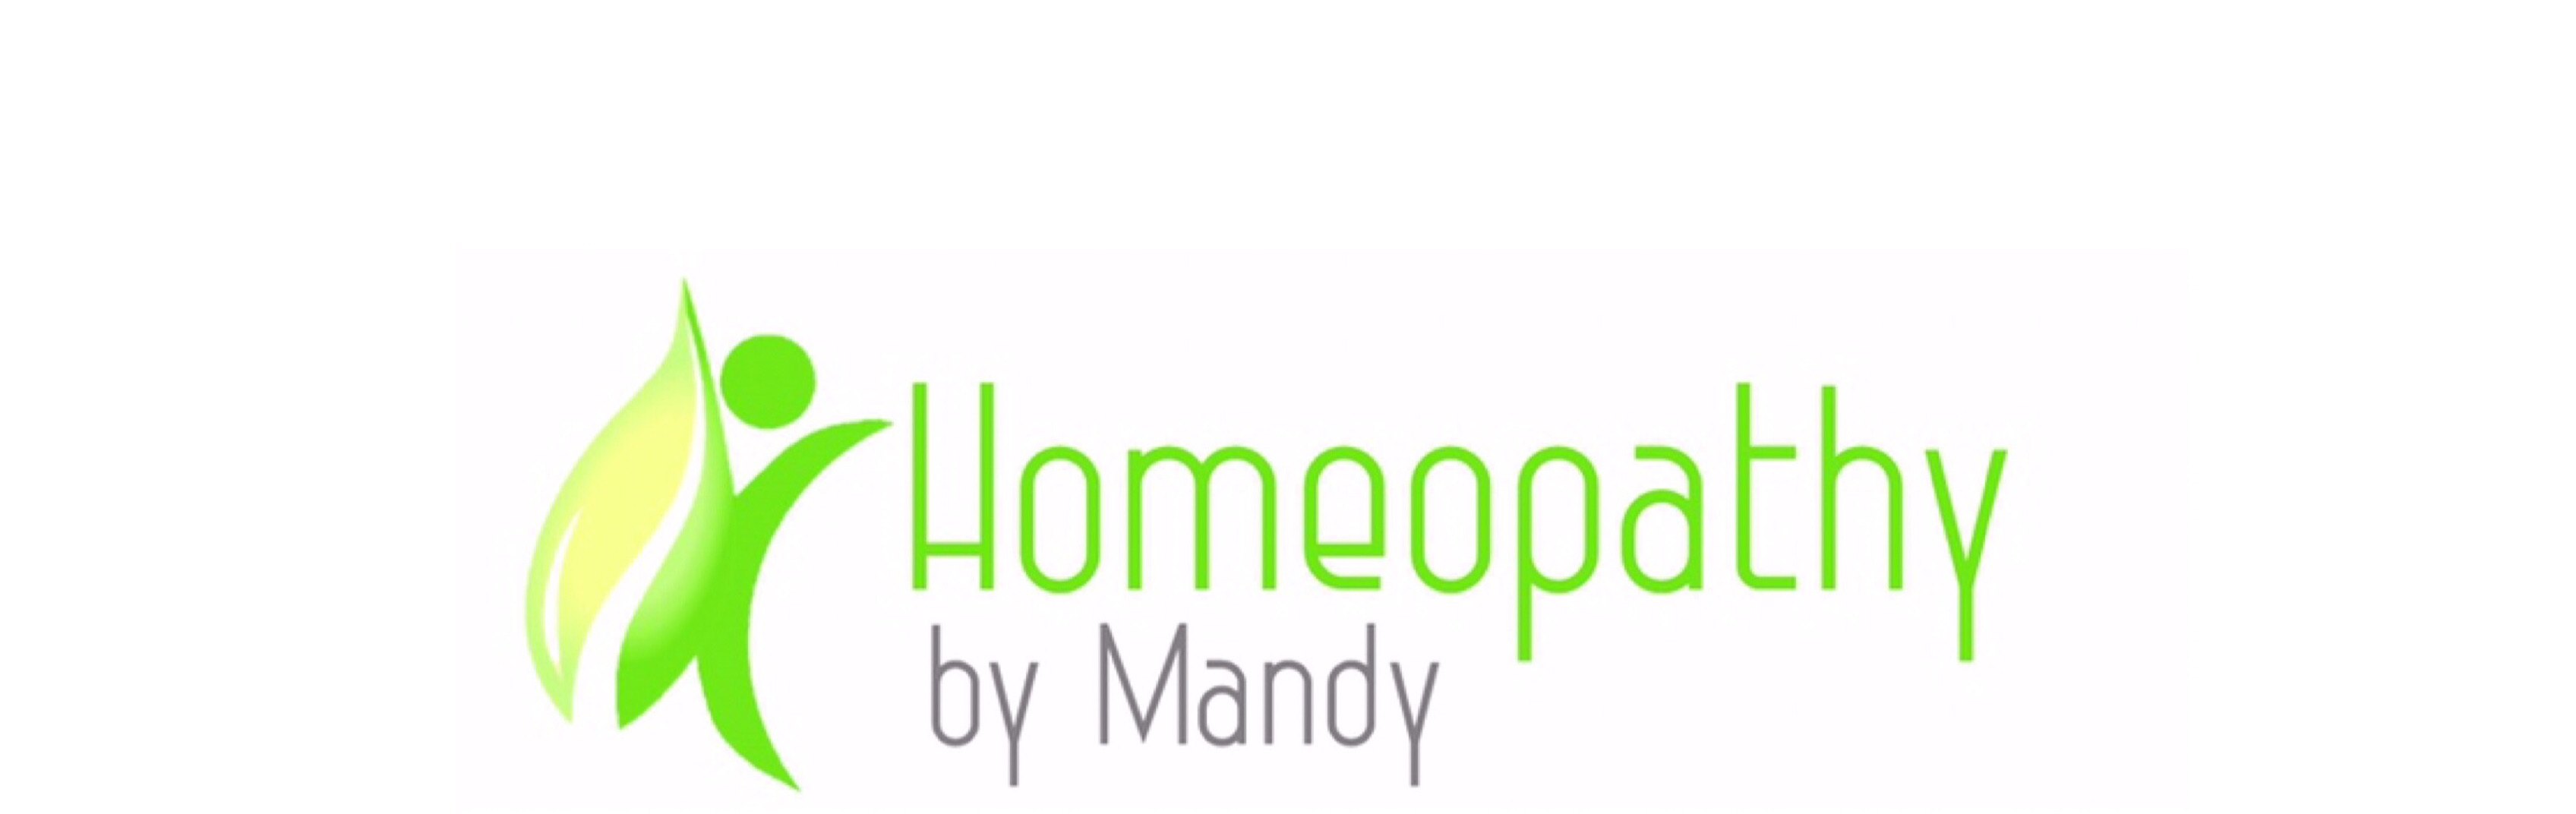 Mandy Hyde Logo - Homeopathy by Mandy